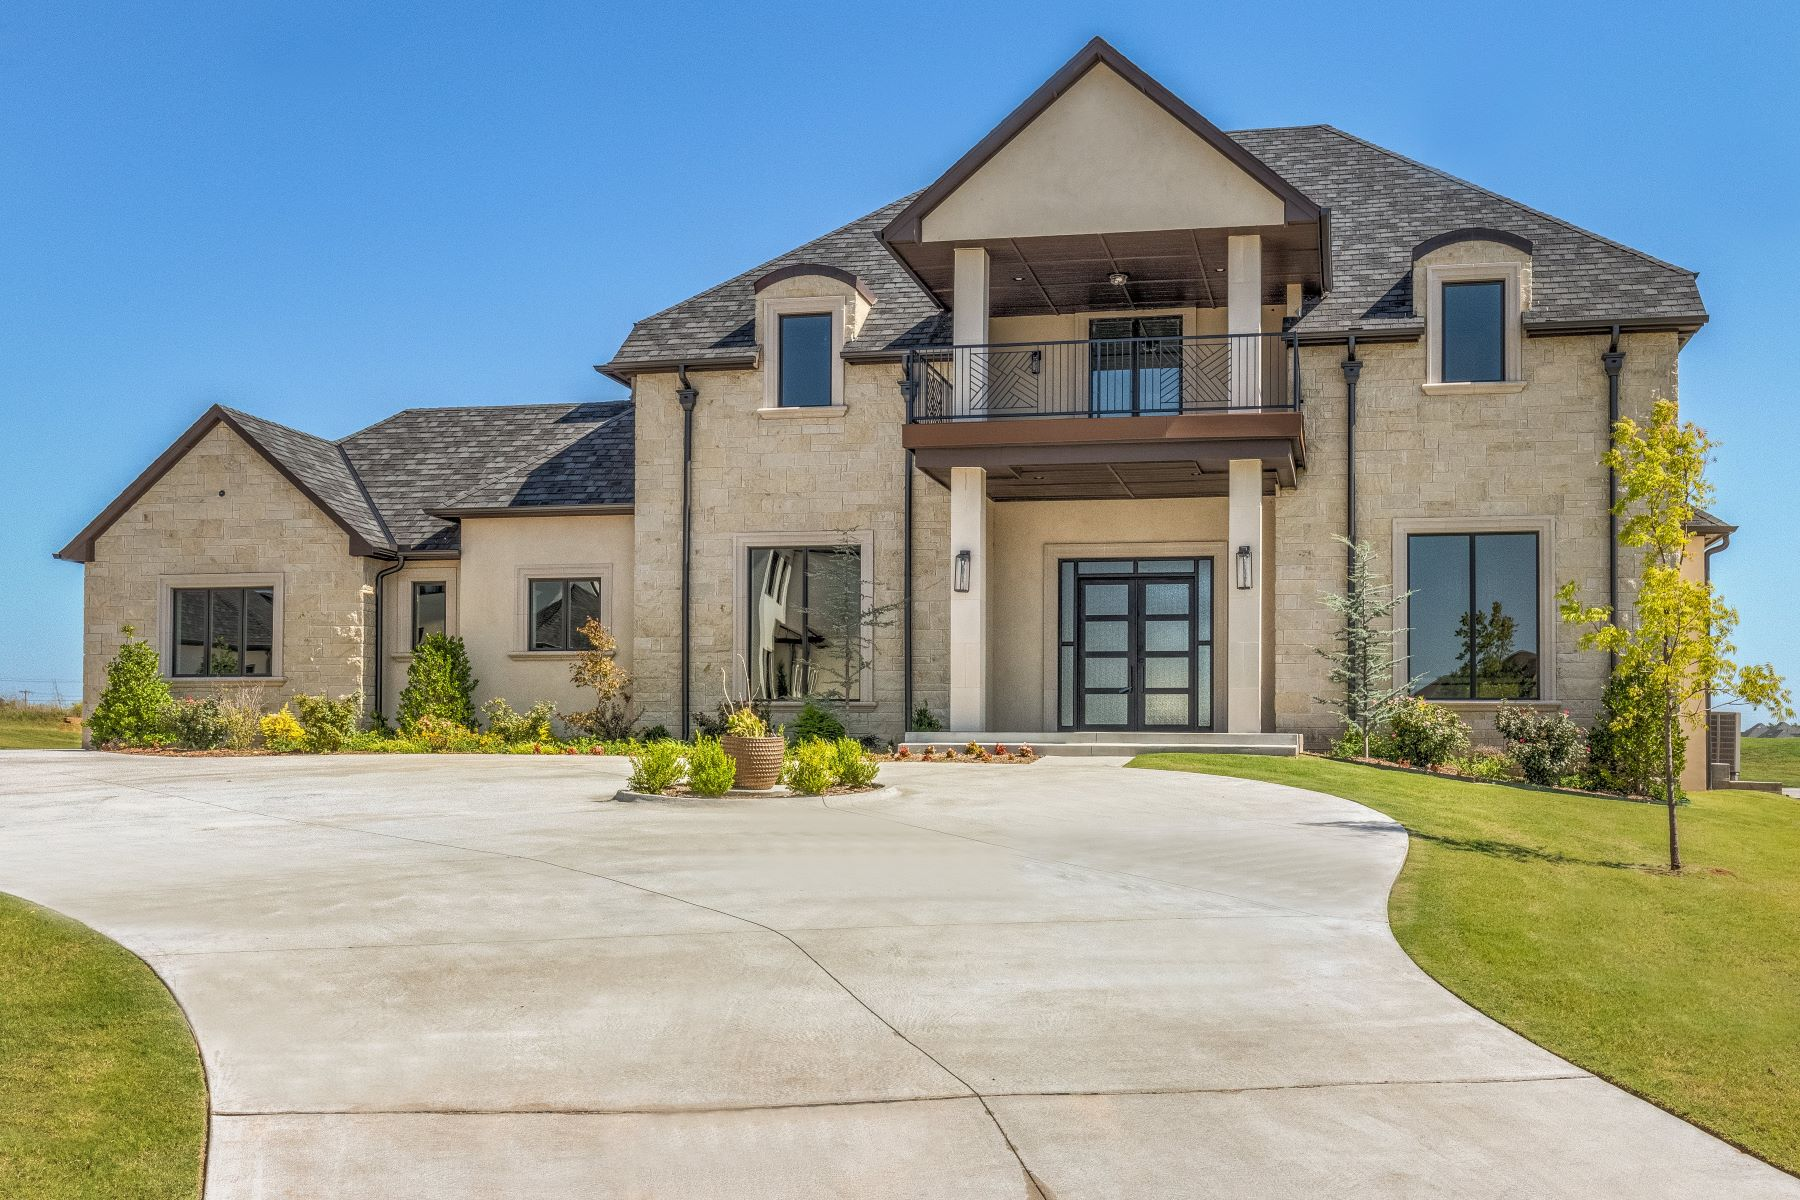 Single Family Homes for Sale at A League of Luxury in The Lakes of Rose Creek 17812 Blue Heron Court Edmond, Oklahoma 73012 United States